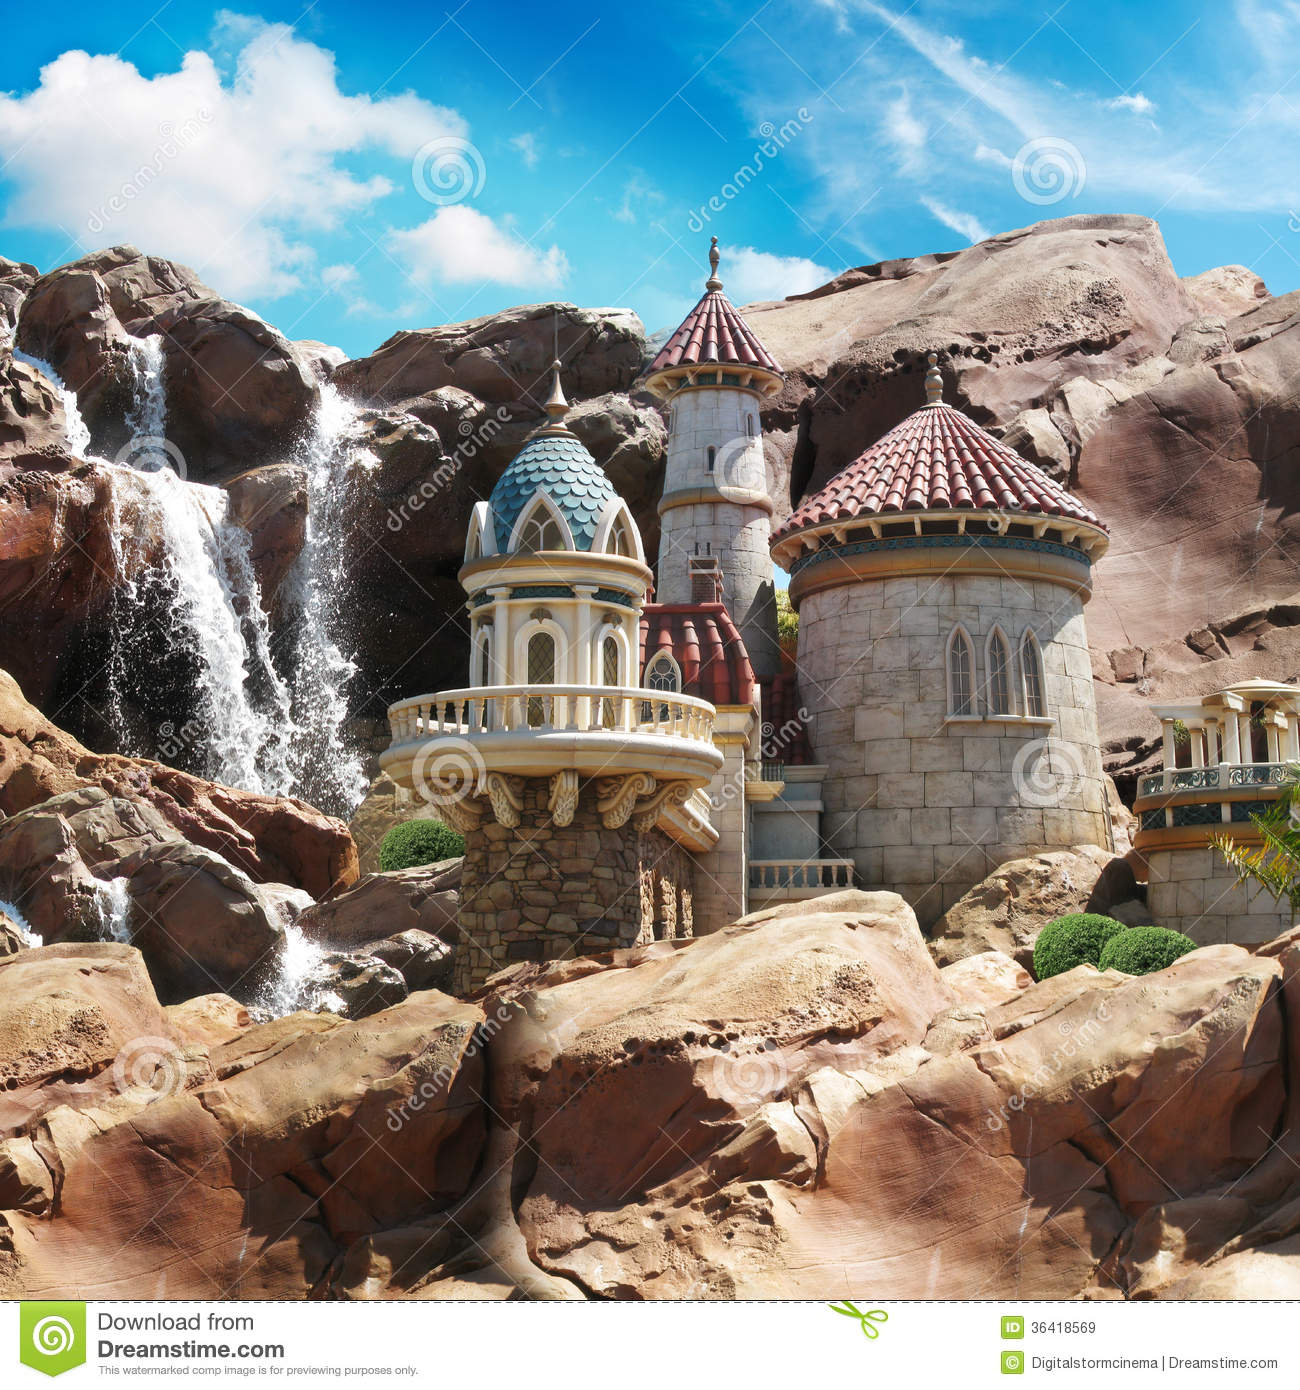 Fantasy Castle On The Cliffs Royalty Free Stock Images ...